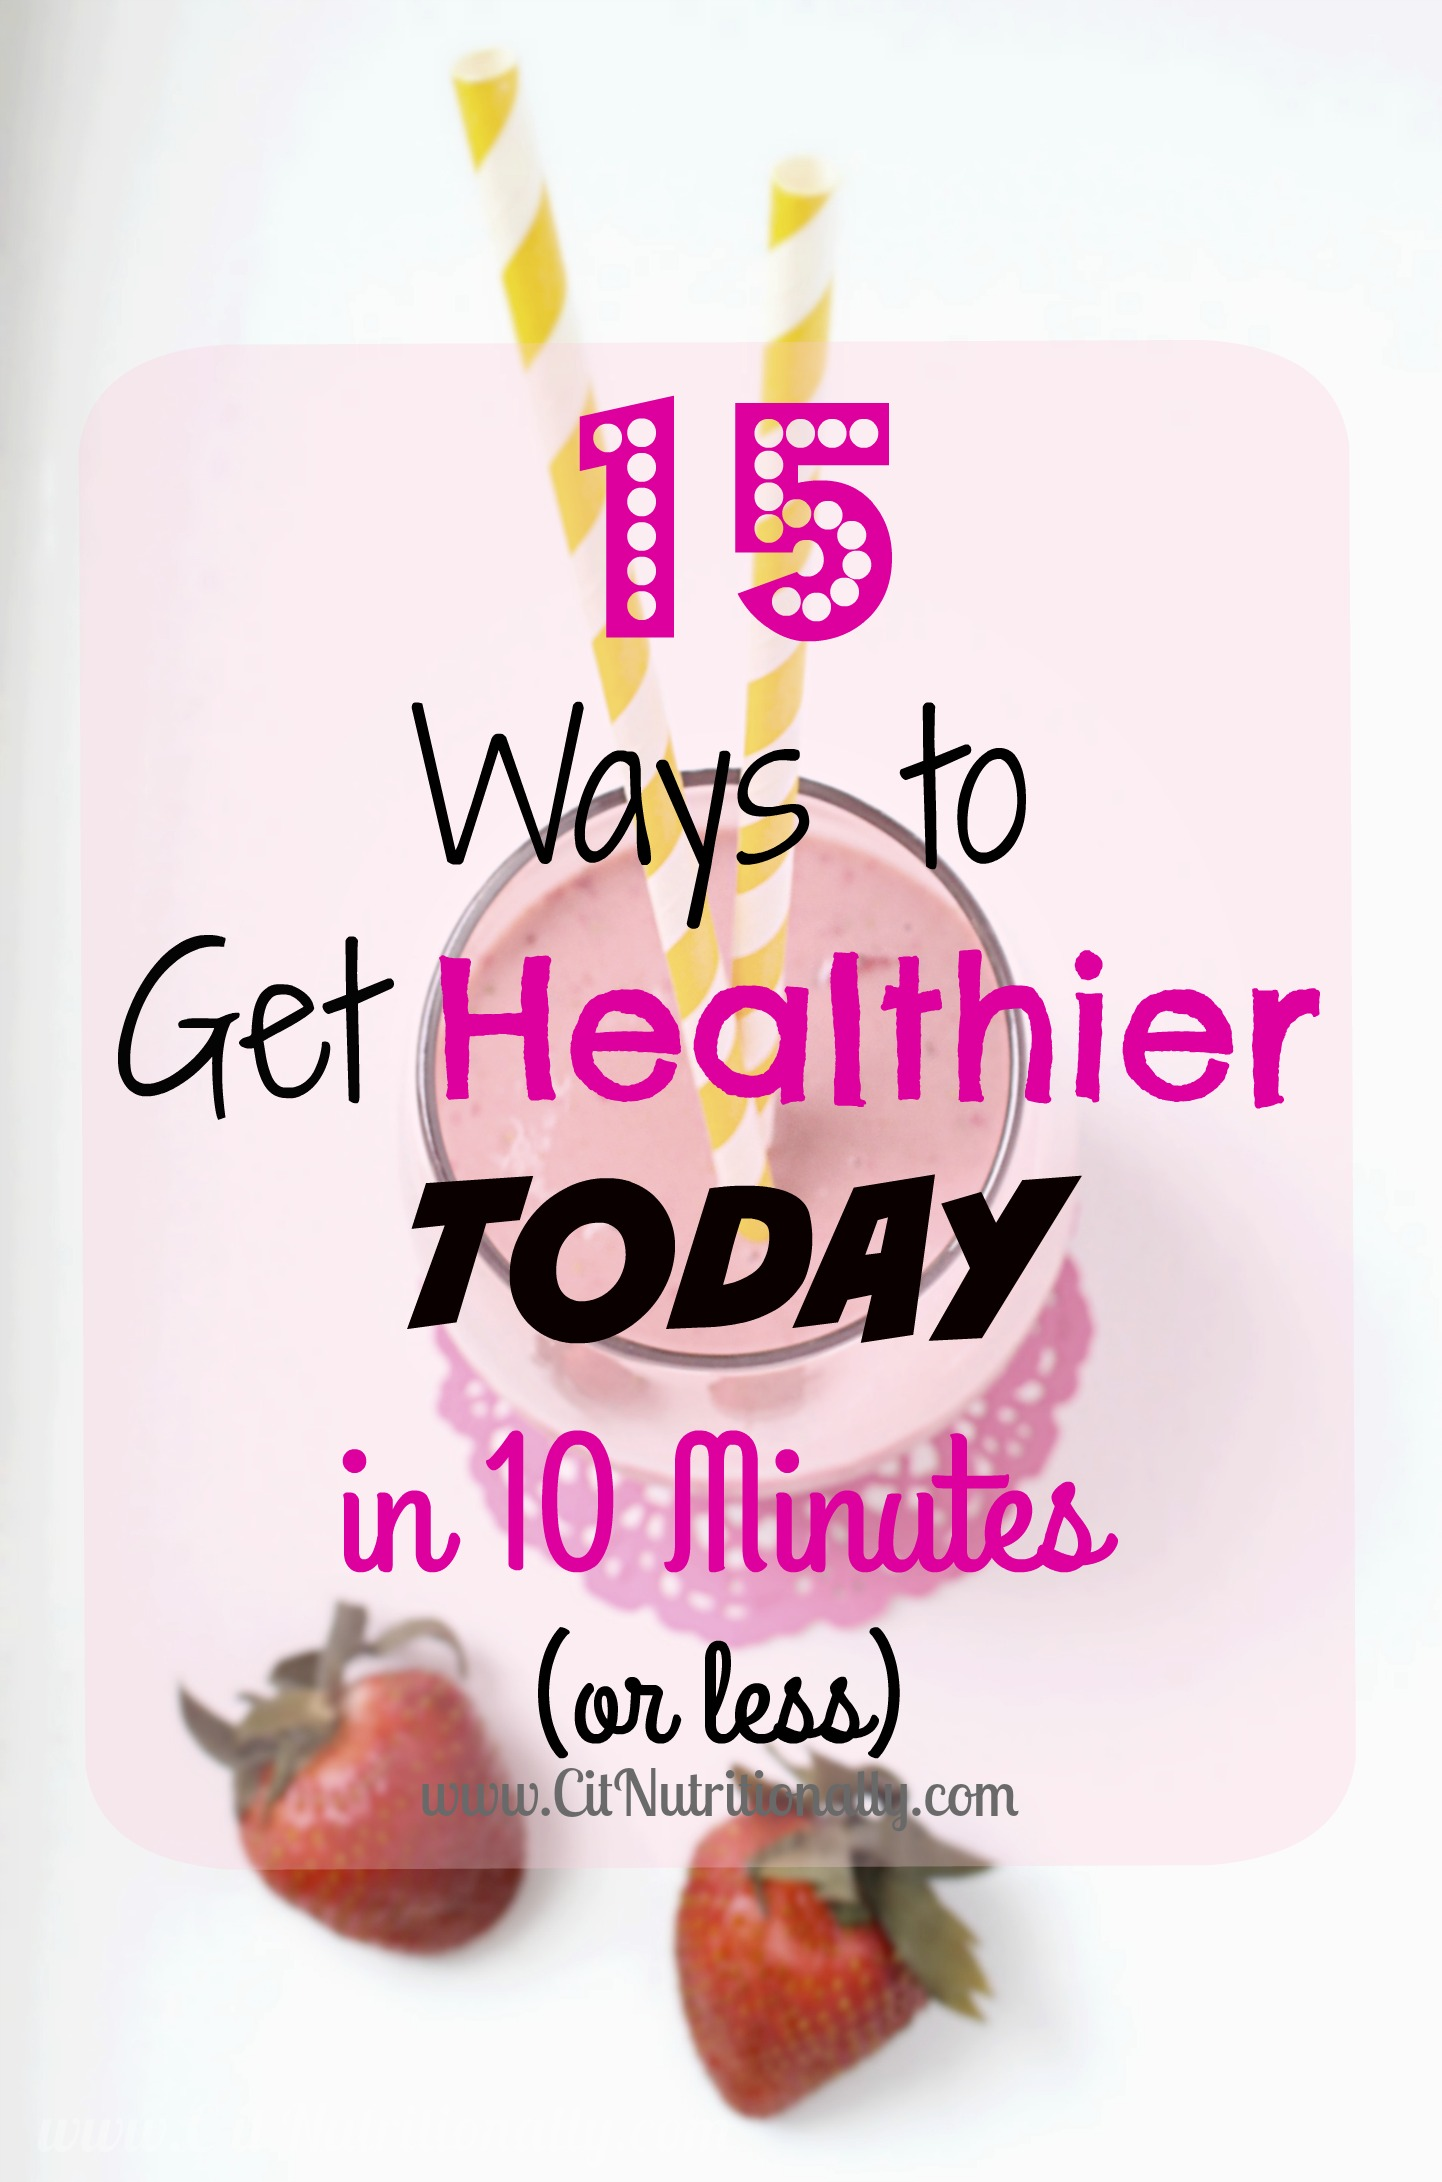 Why Wait for Resolutions? 15 Ways to Get Healthier TODAY in 10 Minutes or Less | C it Nutritionally